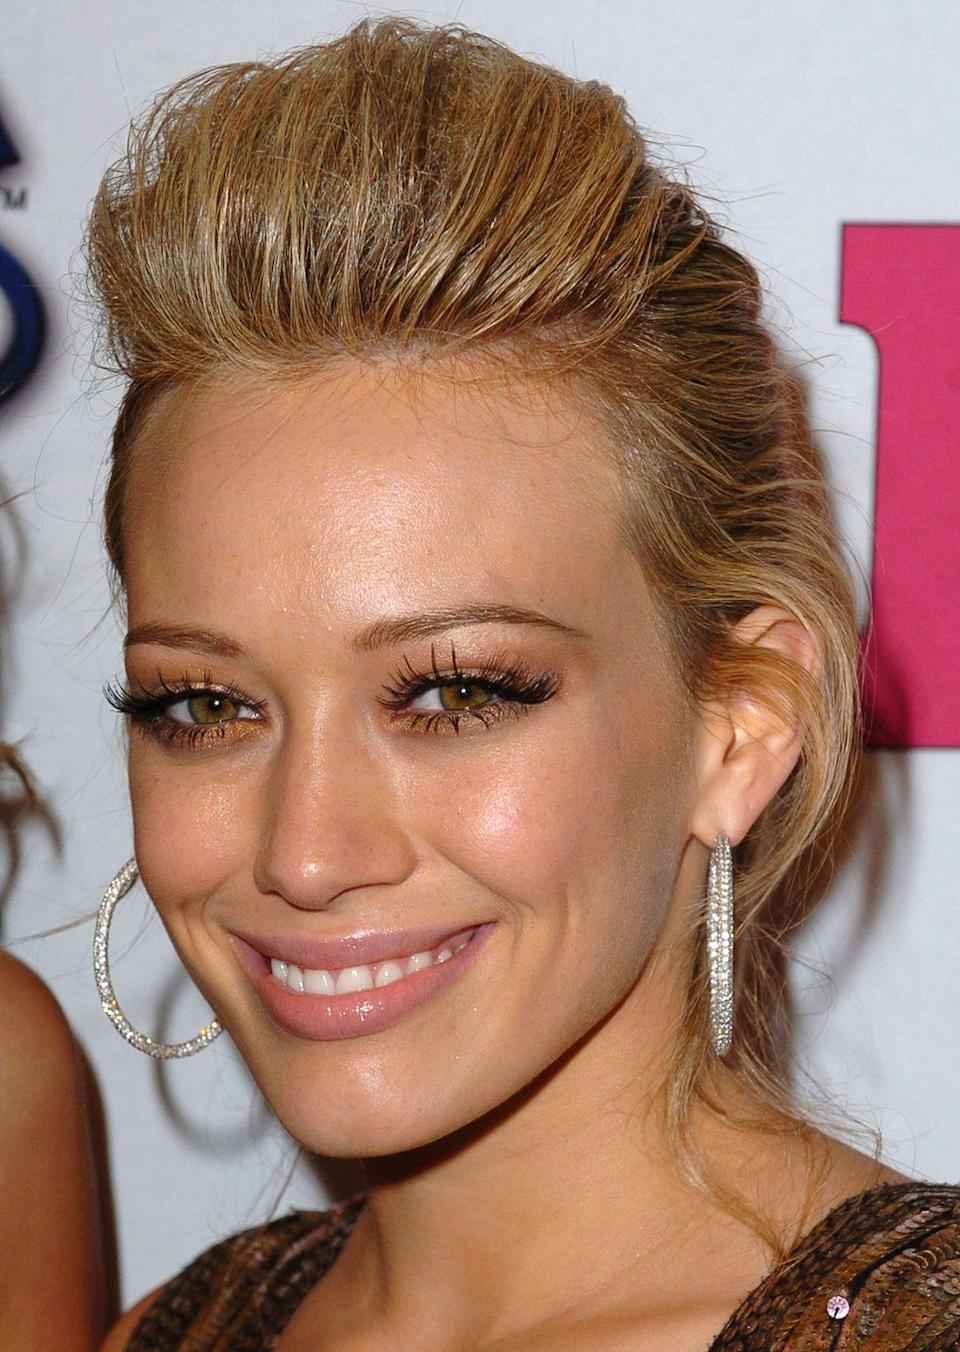 <p>This coiffed pony was a Hilary Duff staple during the mid-2000s—and based off of looks alone, we assume it required large amounts of hair gel to achieve. </p>